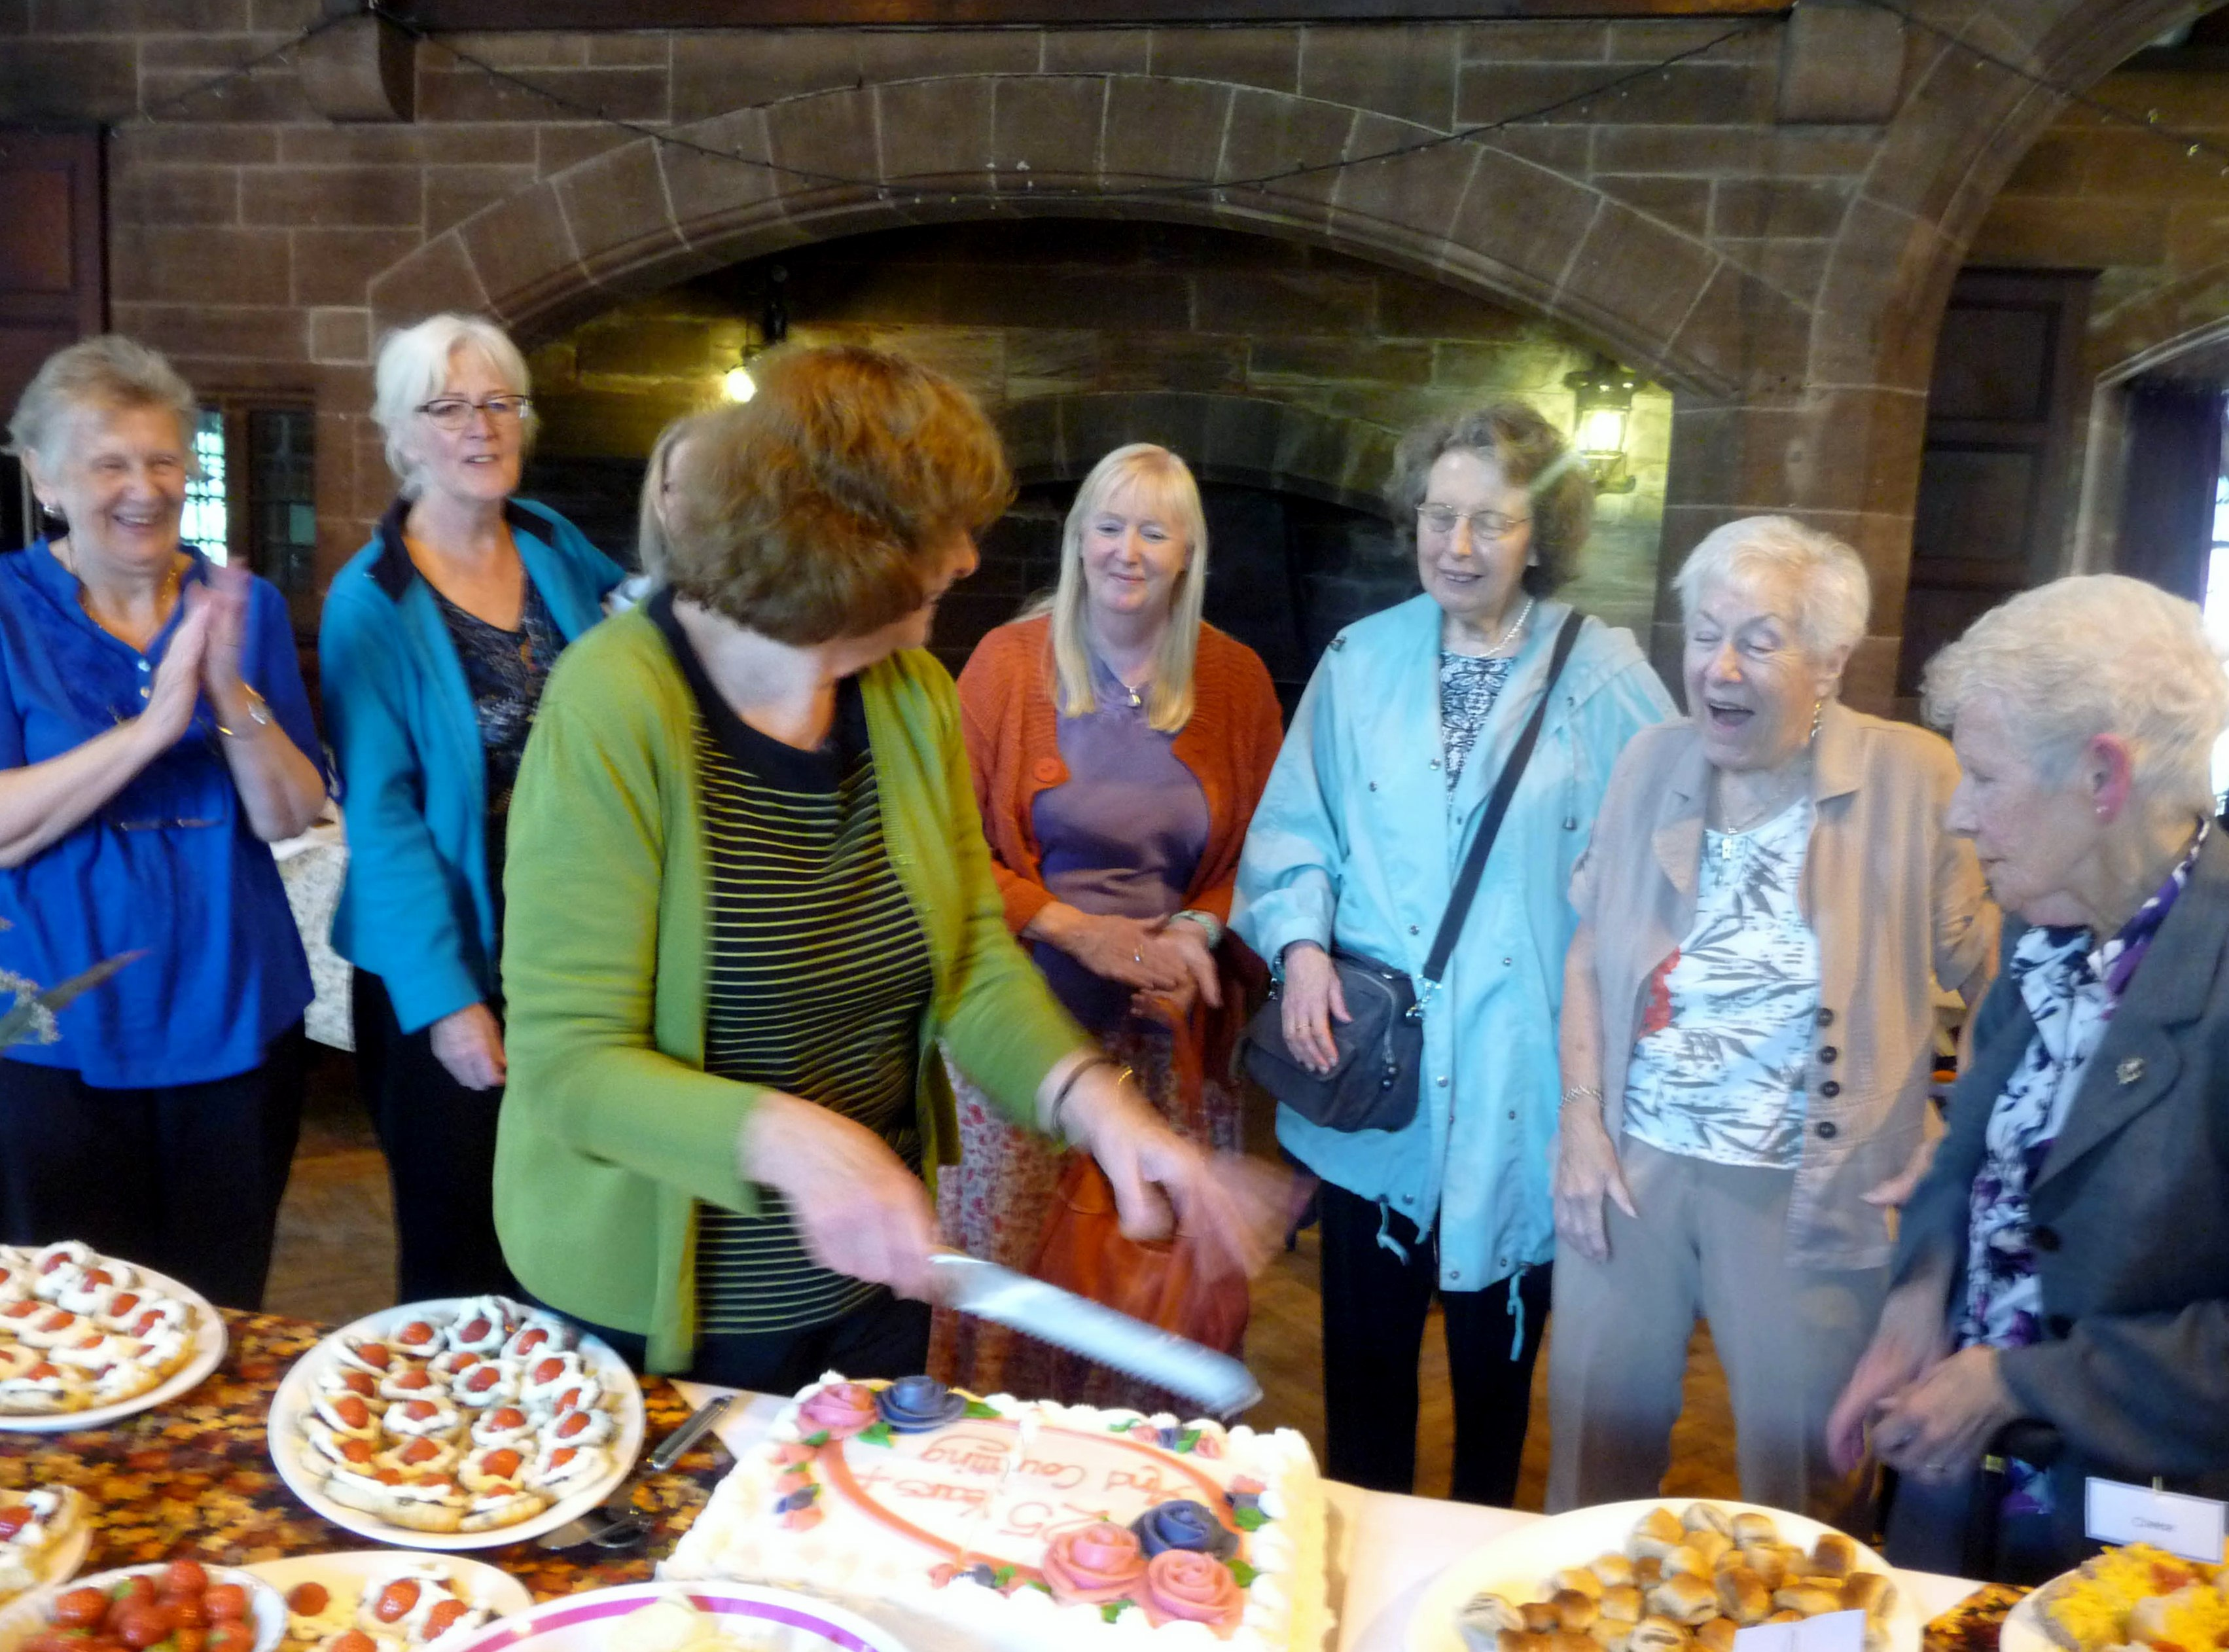 These ladies are all MEG members who have been in the Guild for 25 years or more. We had a special celebratory cake for them at our September Tea Party